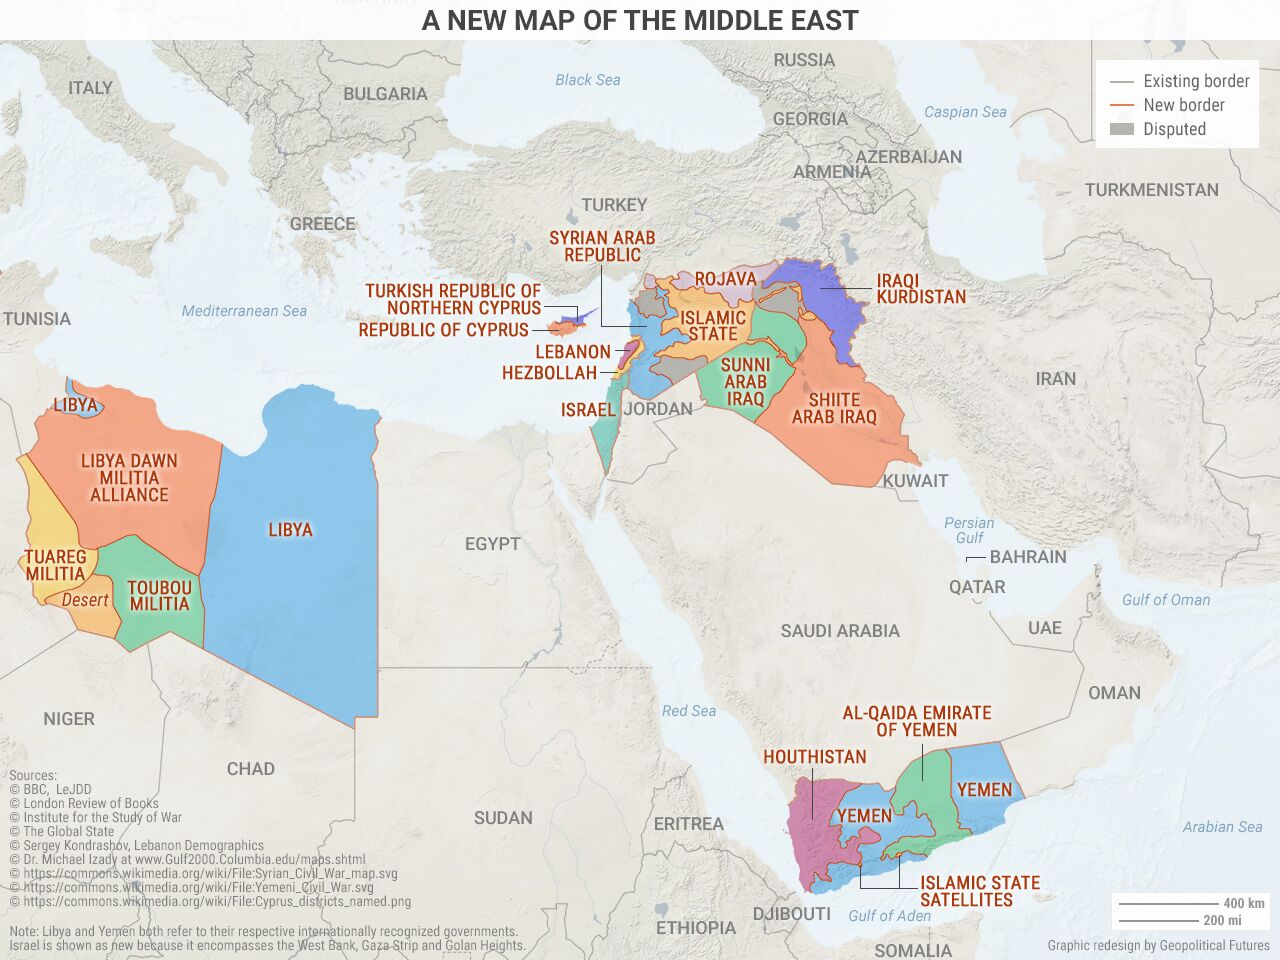 A New Map of the Middle East